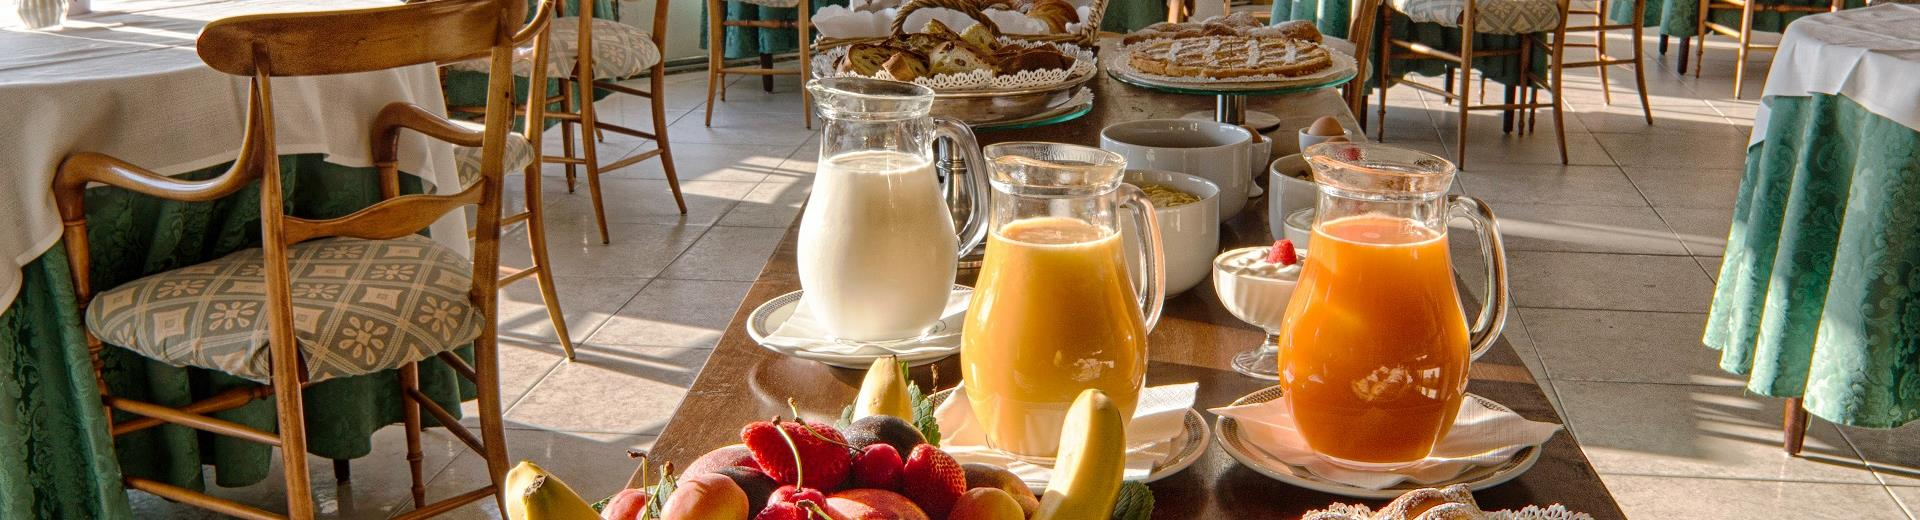 Rich breakfast buffet at the BW hotel Regina Elena Santa Margherita Ligure